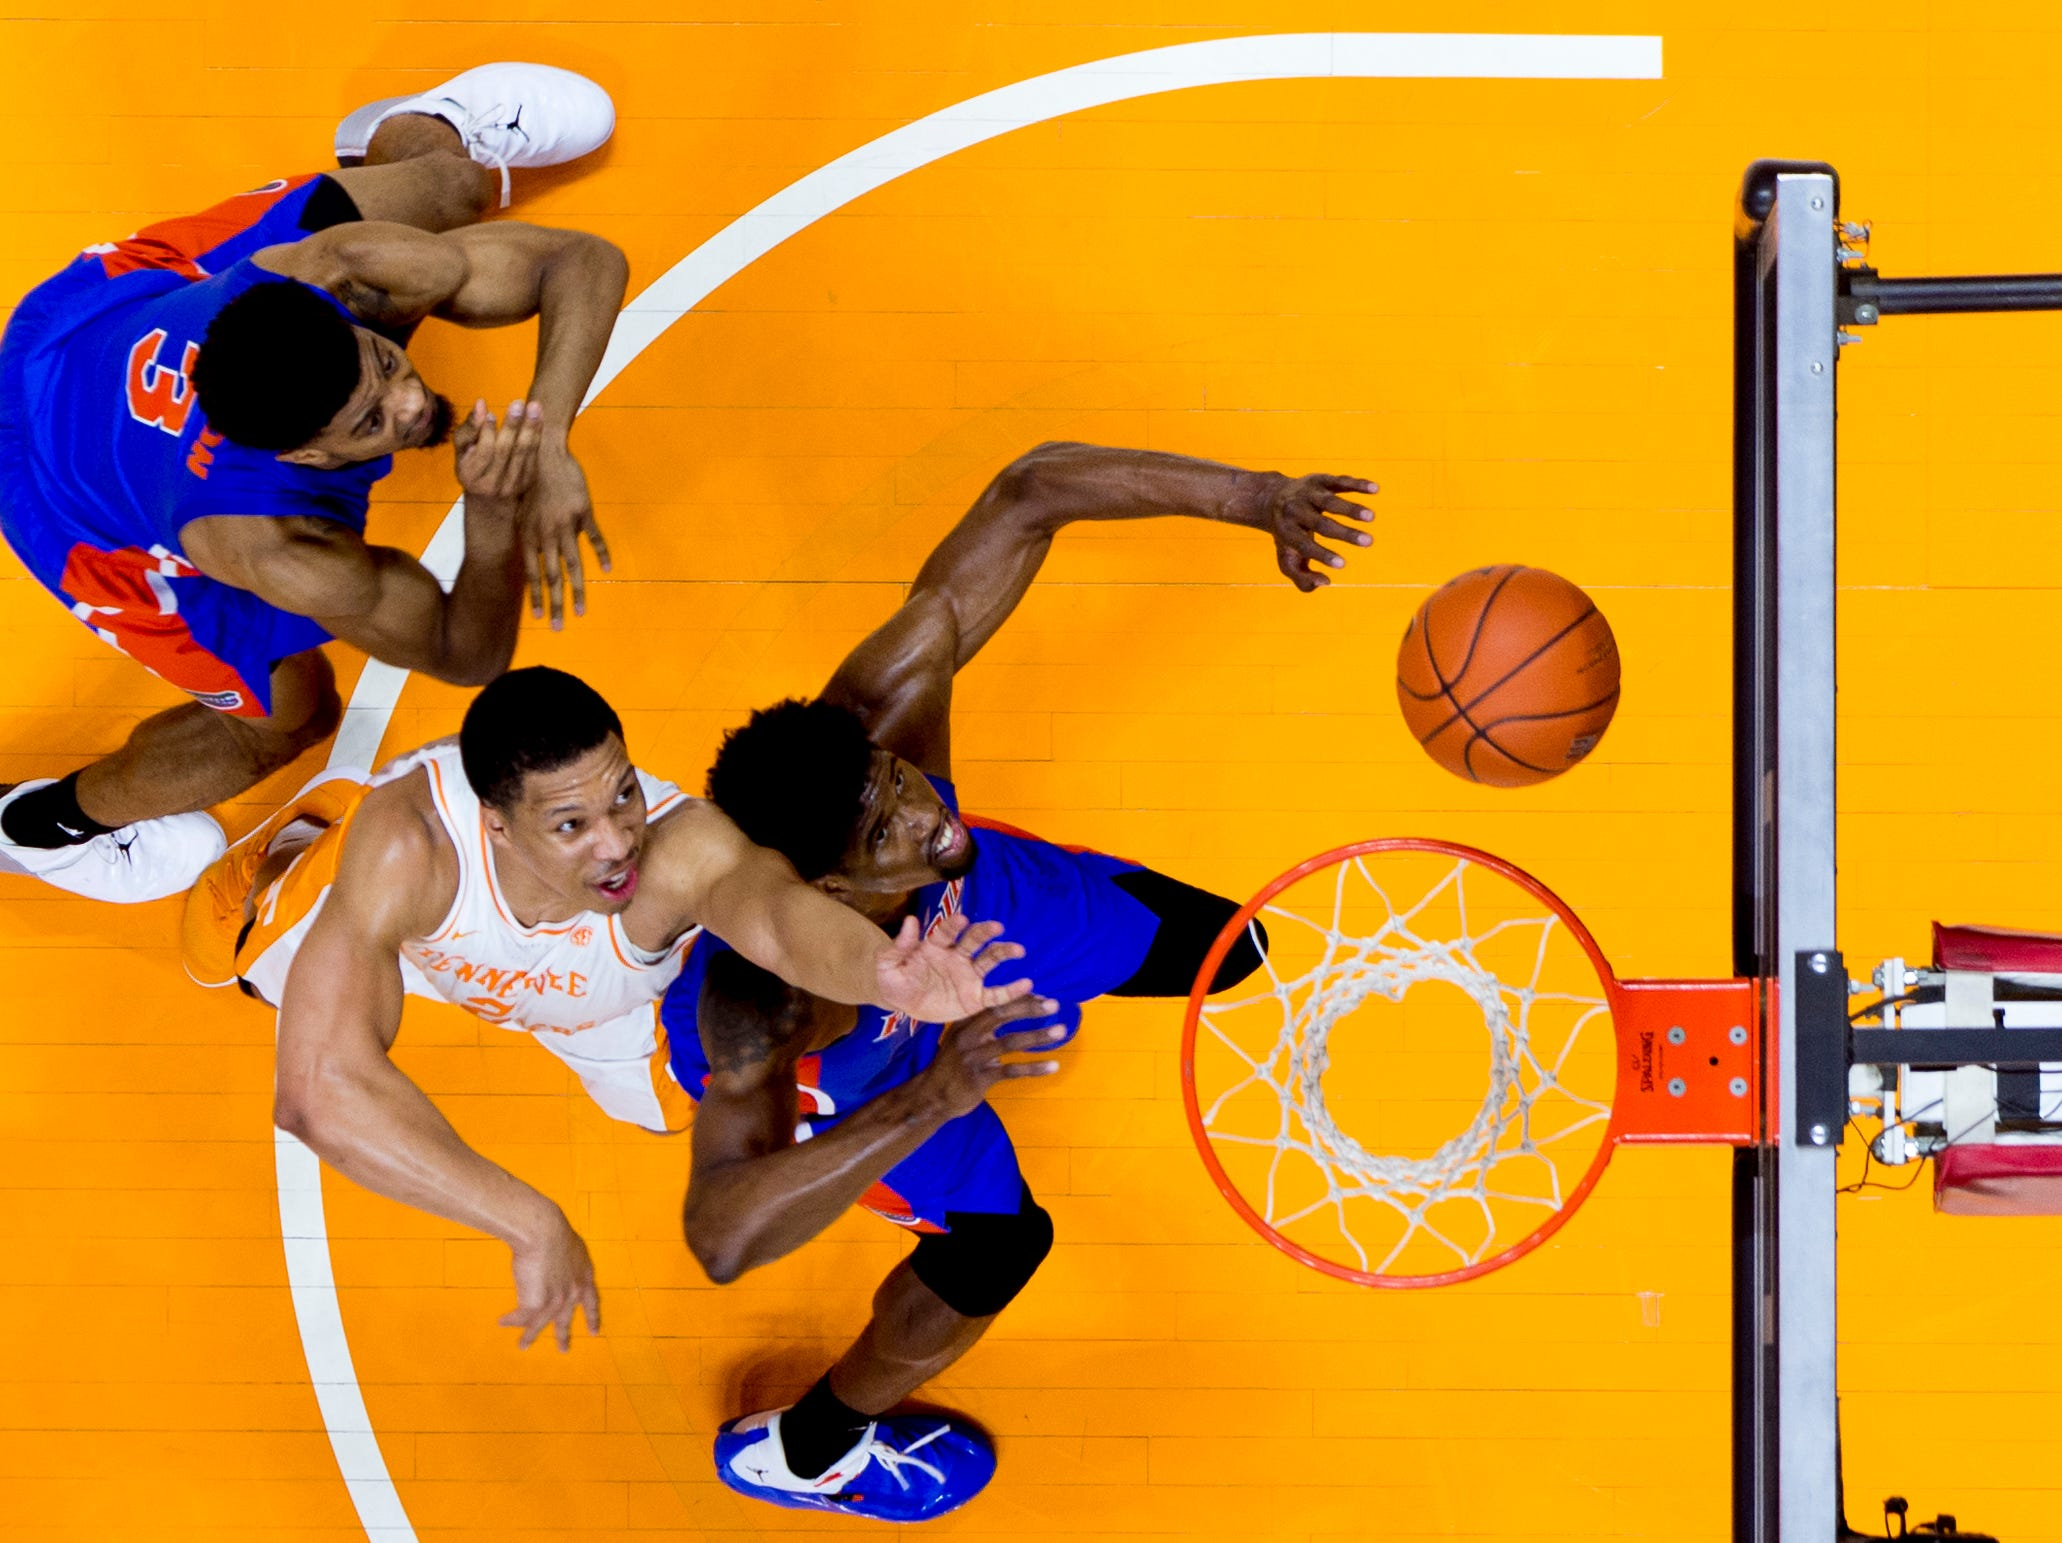 Tennessee forward Grant Williams (2) reaches for the ball past Florida center Kevarrius Hayes (13) during a game between Tennessee and Florida at Thompson-Boling Arena in Knoxville, Tennessee on Saturday, February 9, 2019.